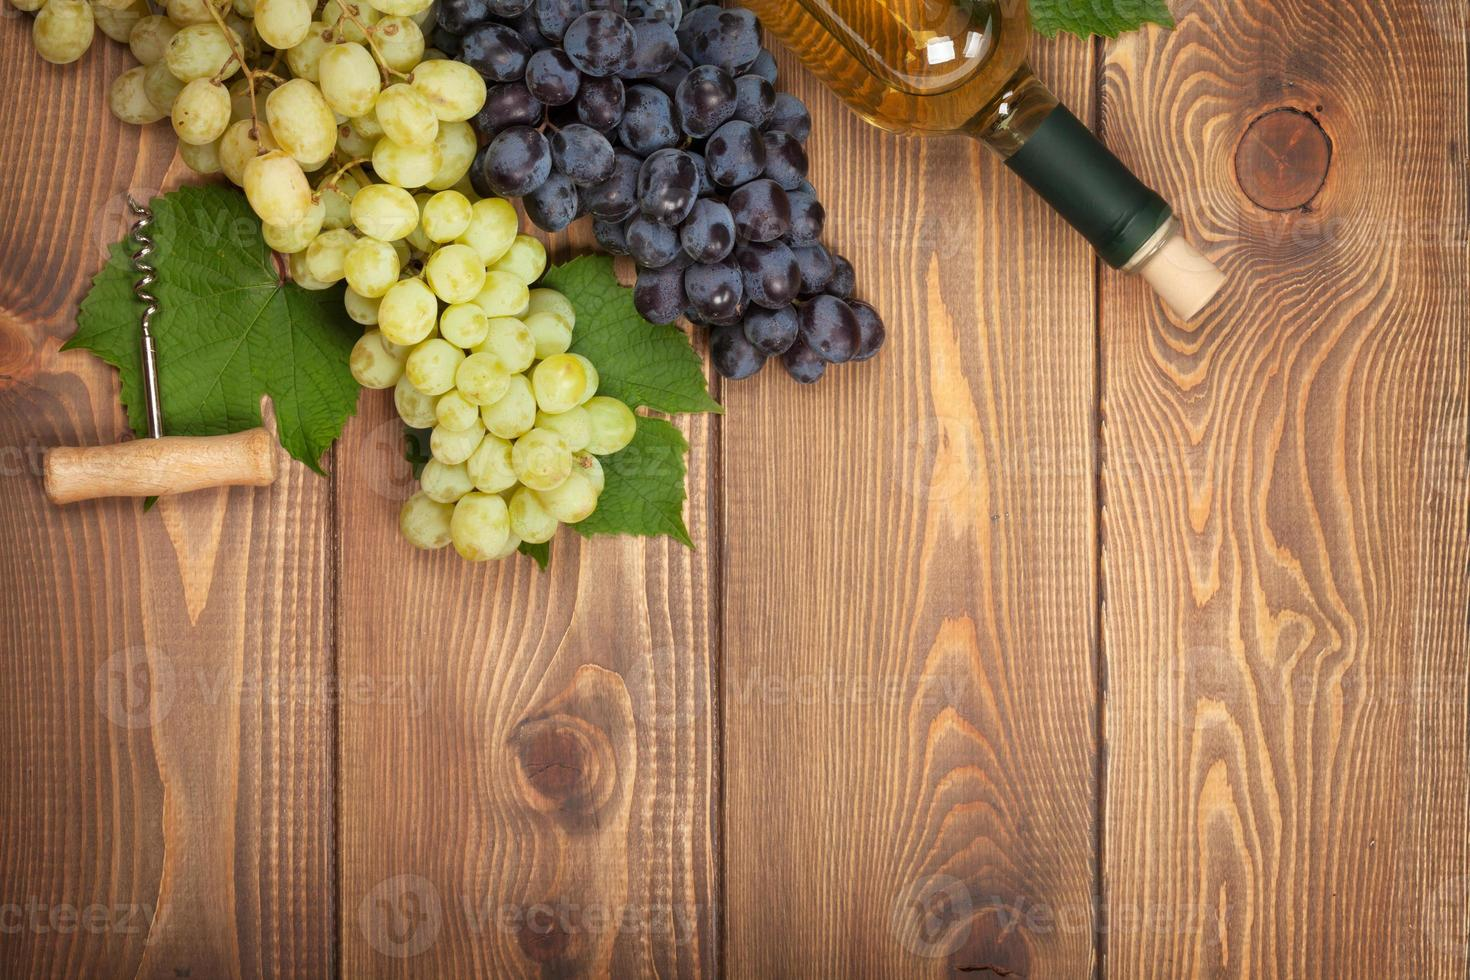 White wine bottle and bunch of grapes photo